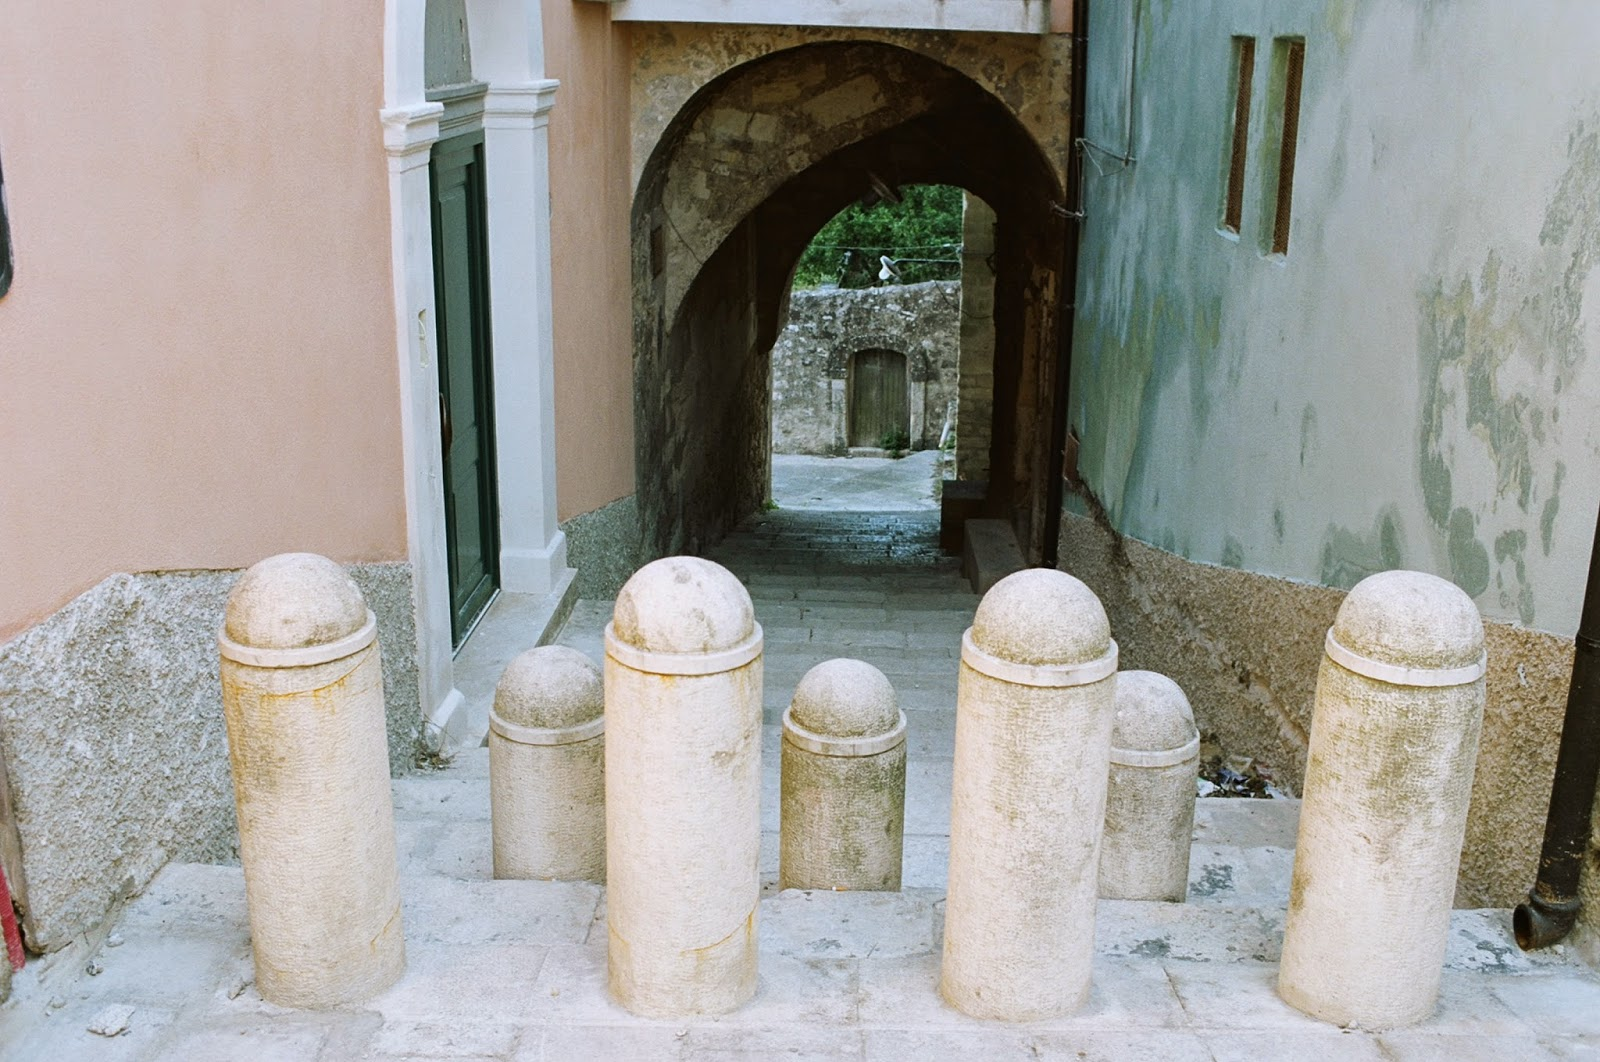 BOLLARDS, NO ENTRY, INSPECTOR MONTELBANO, ANDREA CAMILLERI, SICILY, RAGUSA, PHALLIC SYMBOLS, CIVIC CONTROL, STREET FURNITURE, ACCESS DENIED, RAGUSA, SICILY  © VAC 100 DAYS 4 MILLION CONVERSATIONS